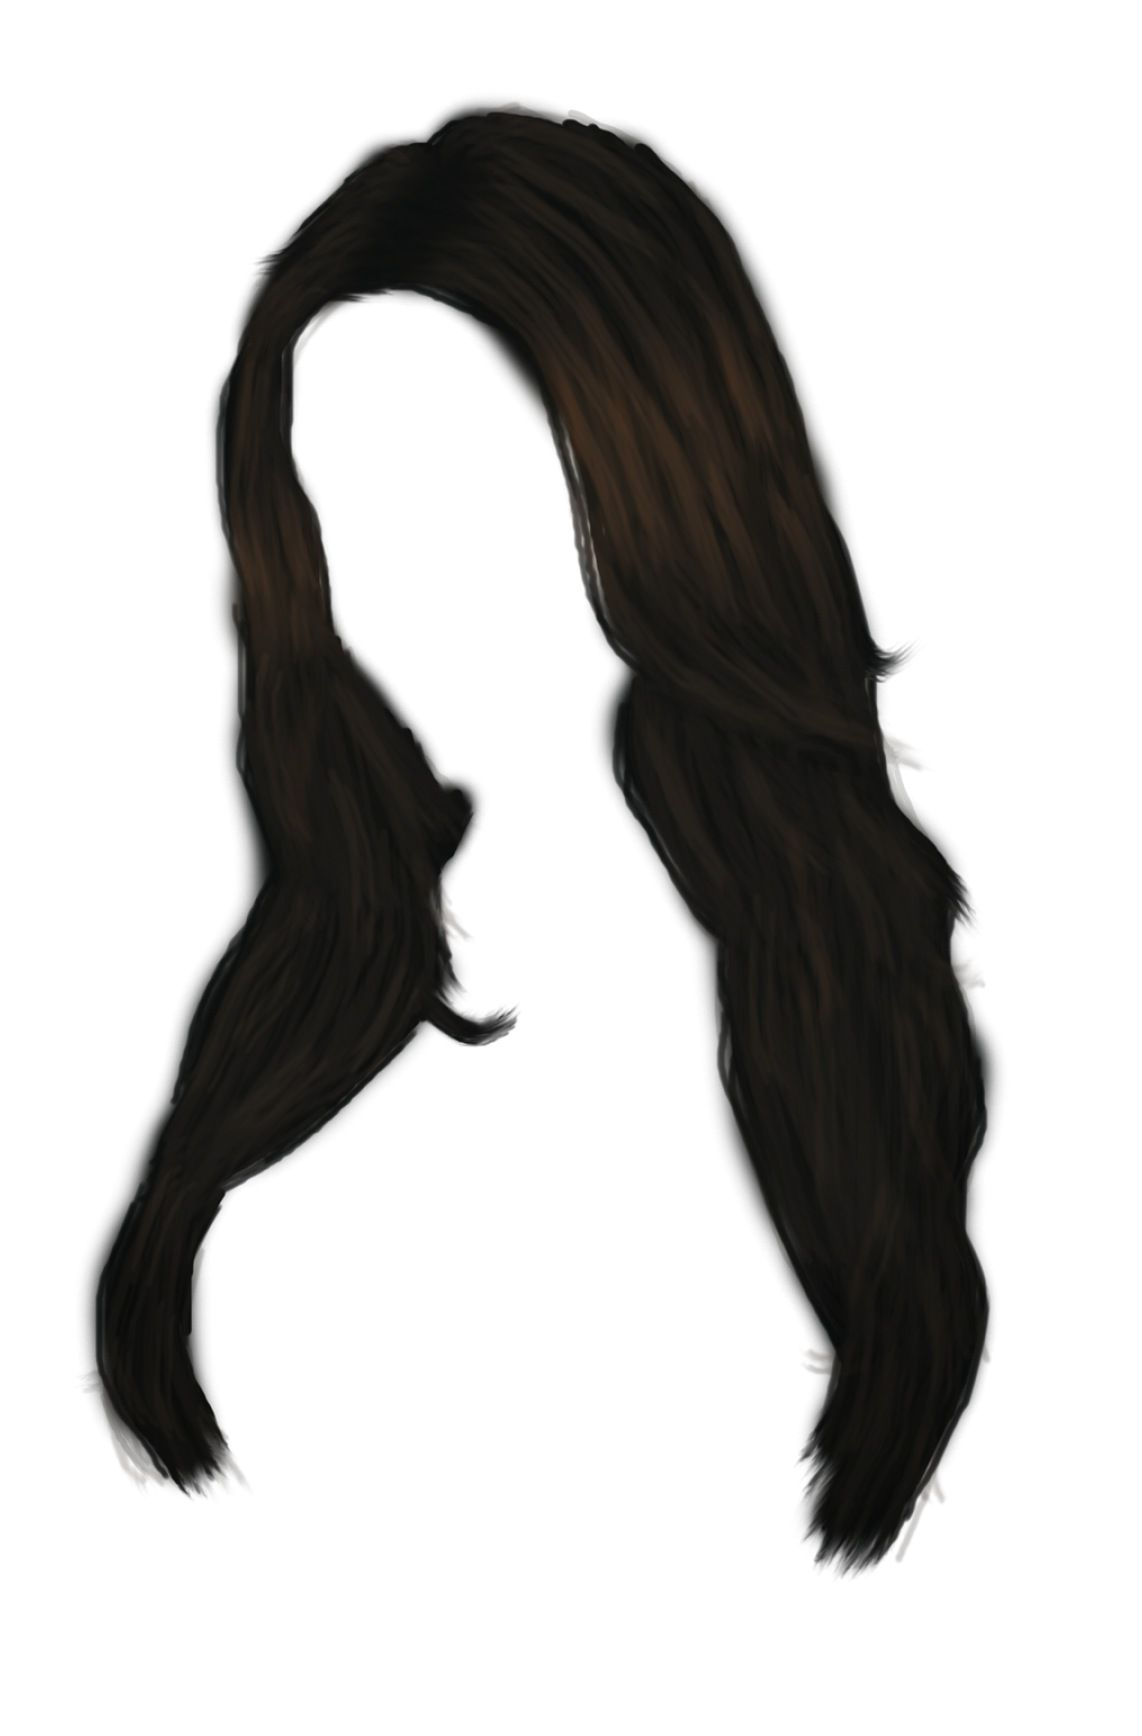 Long Hair Png By Autumns In 2021 Womens Hairstyles Hair Png Hairstyle Gallery